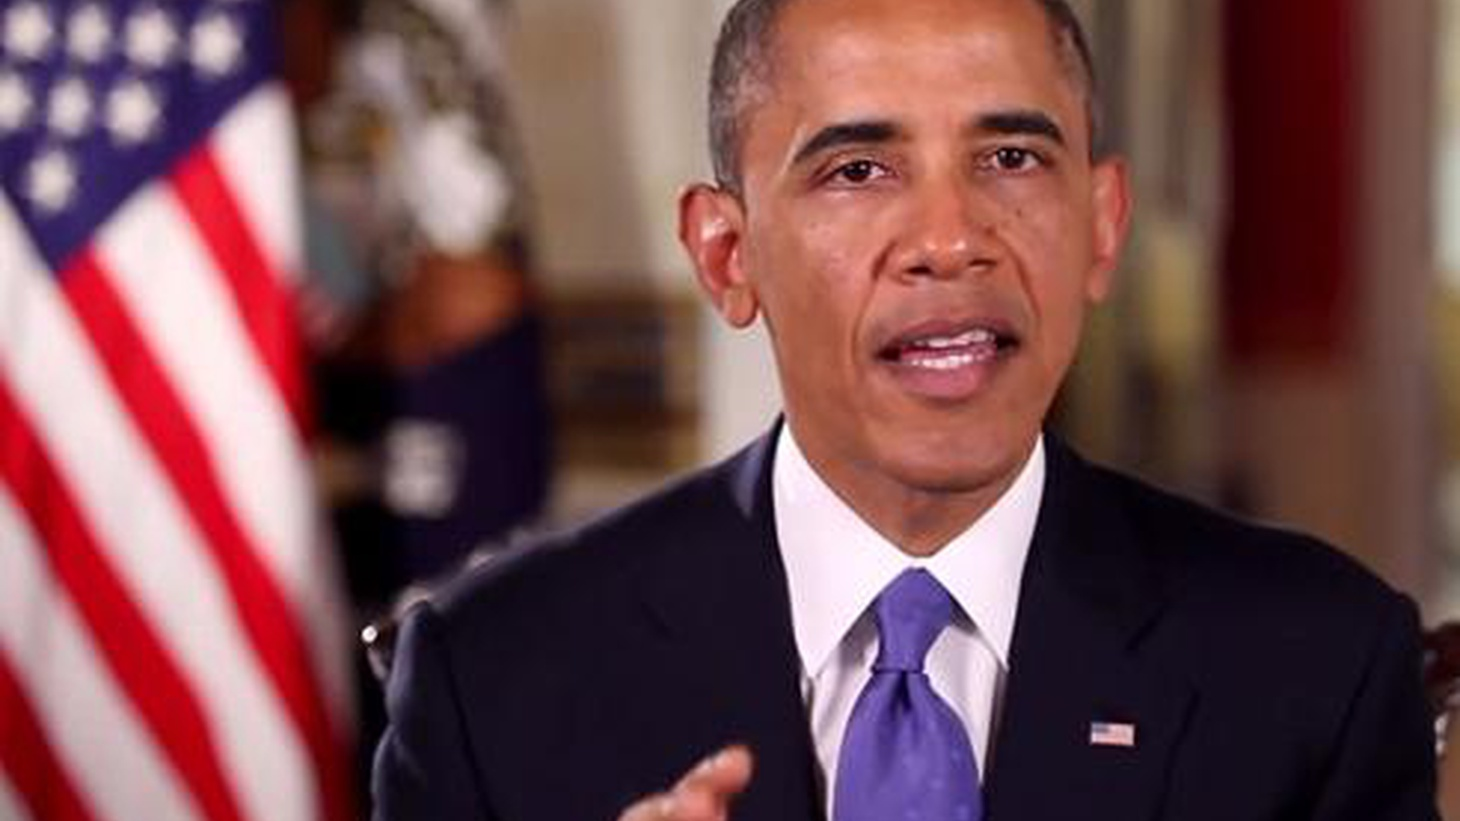 10:55am: President Barack Obama will outline a national plan to reduce carbon emissions and battle climate change.